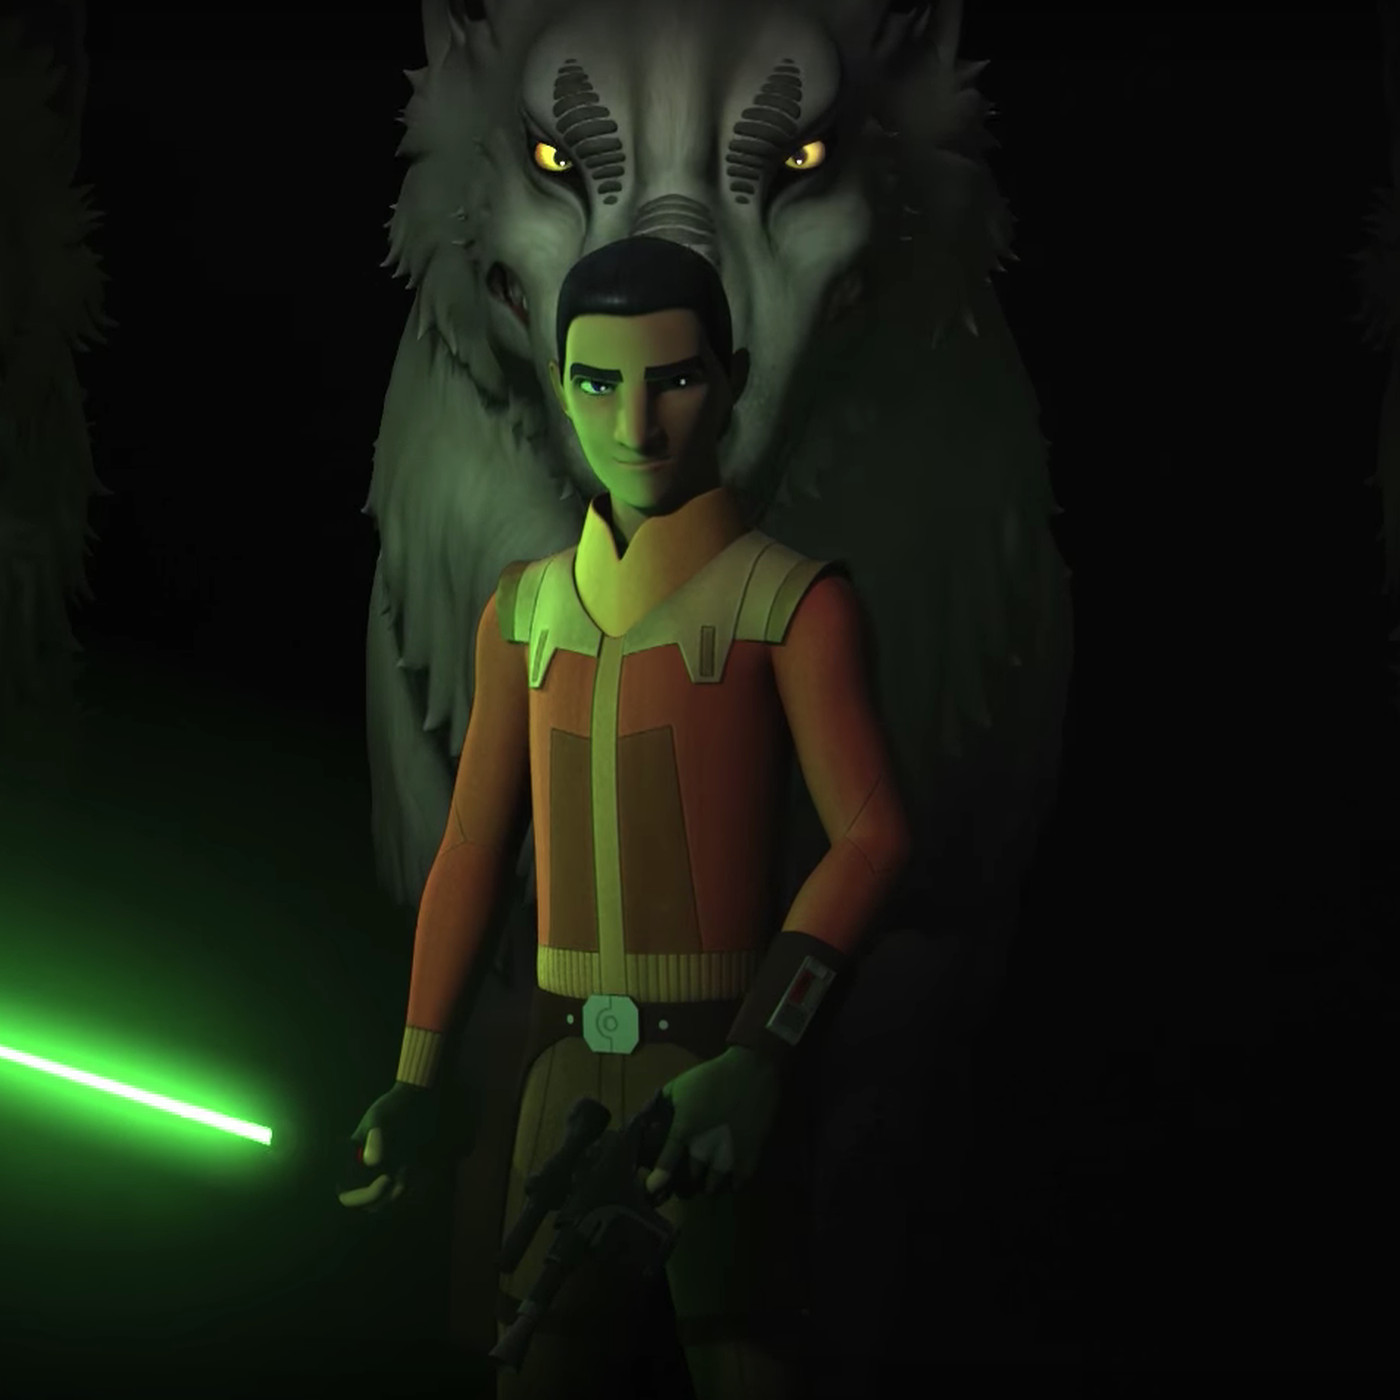 A New Trailer For Star Wars Rebels Teases The Beginning Of The End